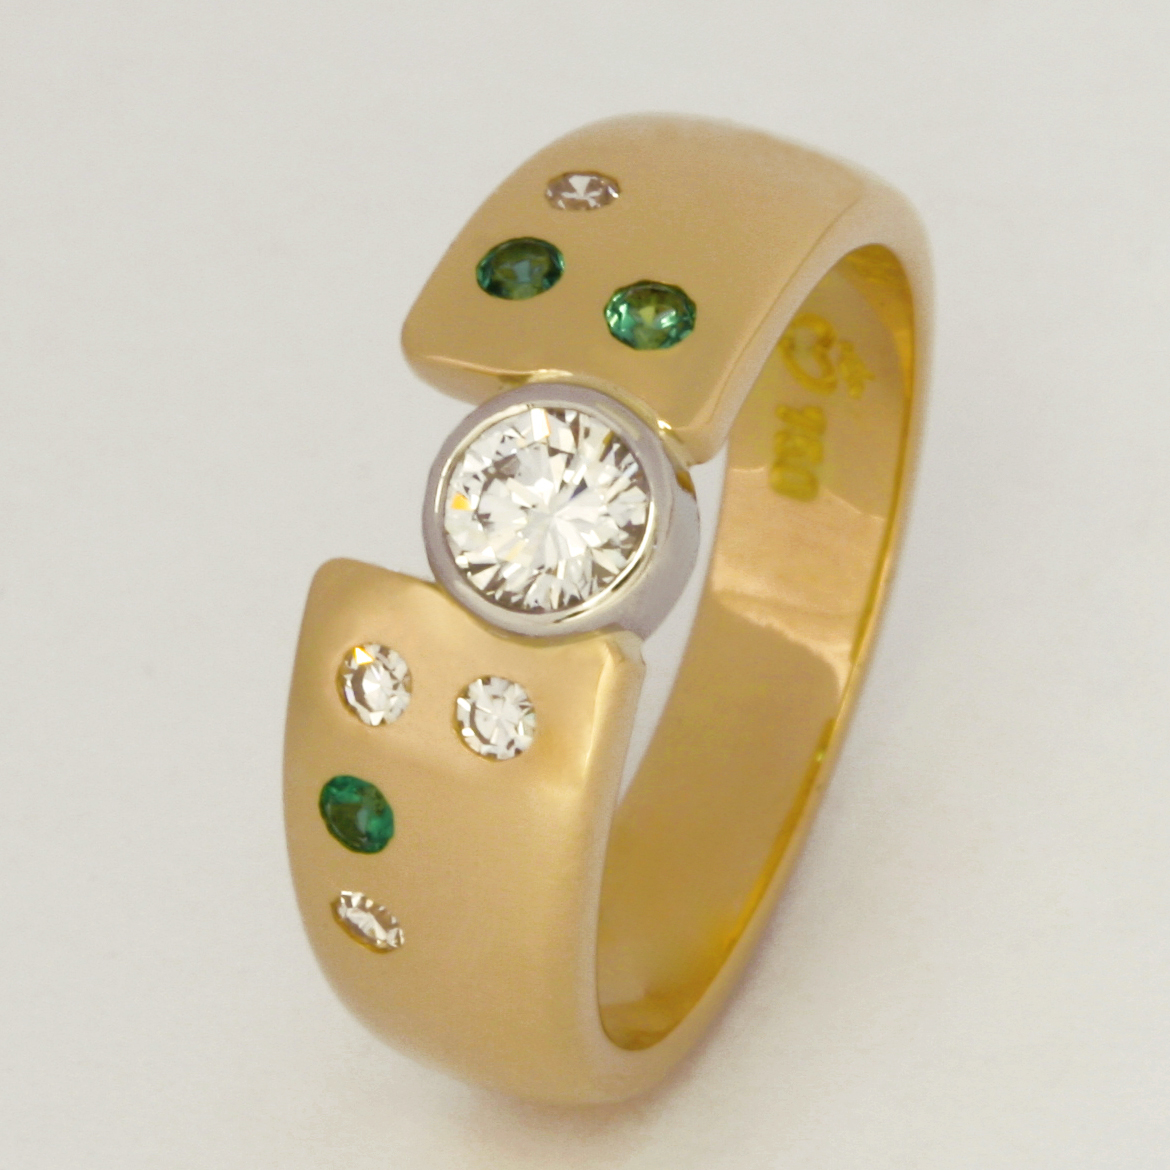 Handmade ladies 18ct yellow gold and palladium ring featuring emeralds and diamonds